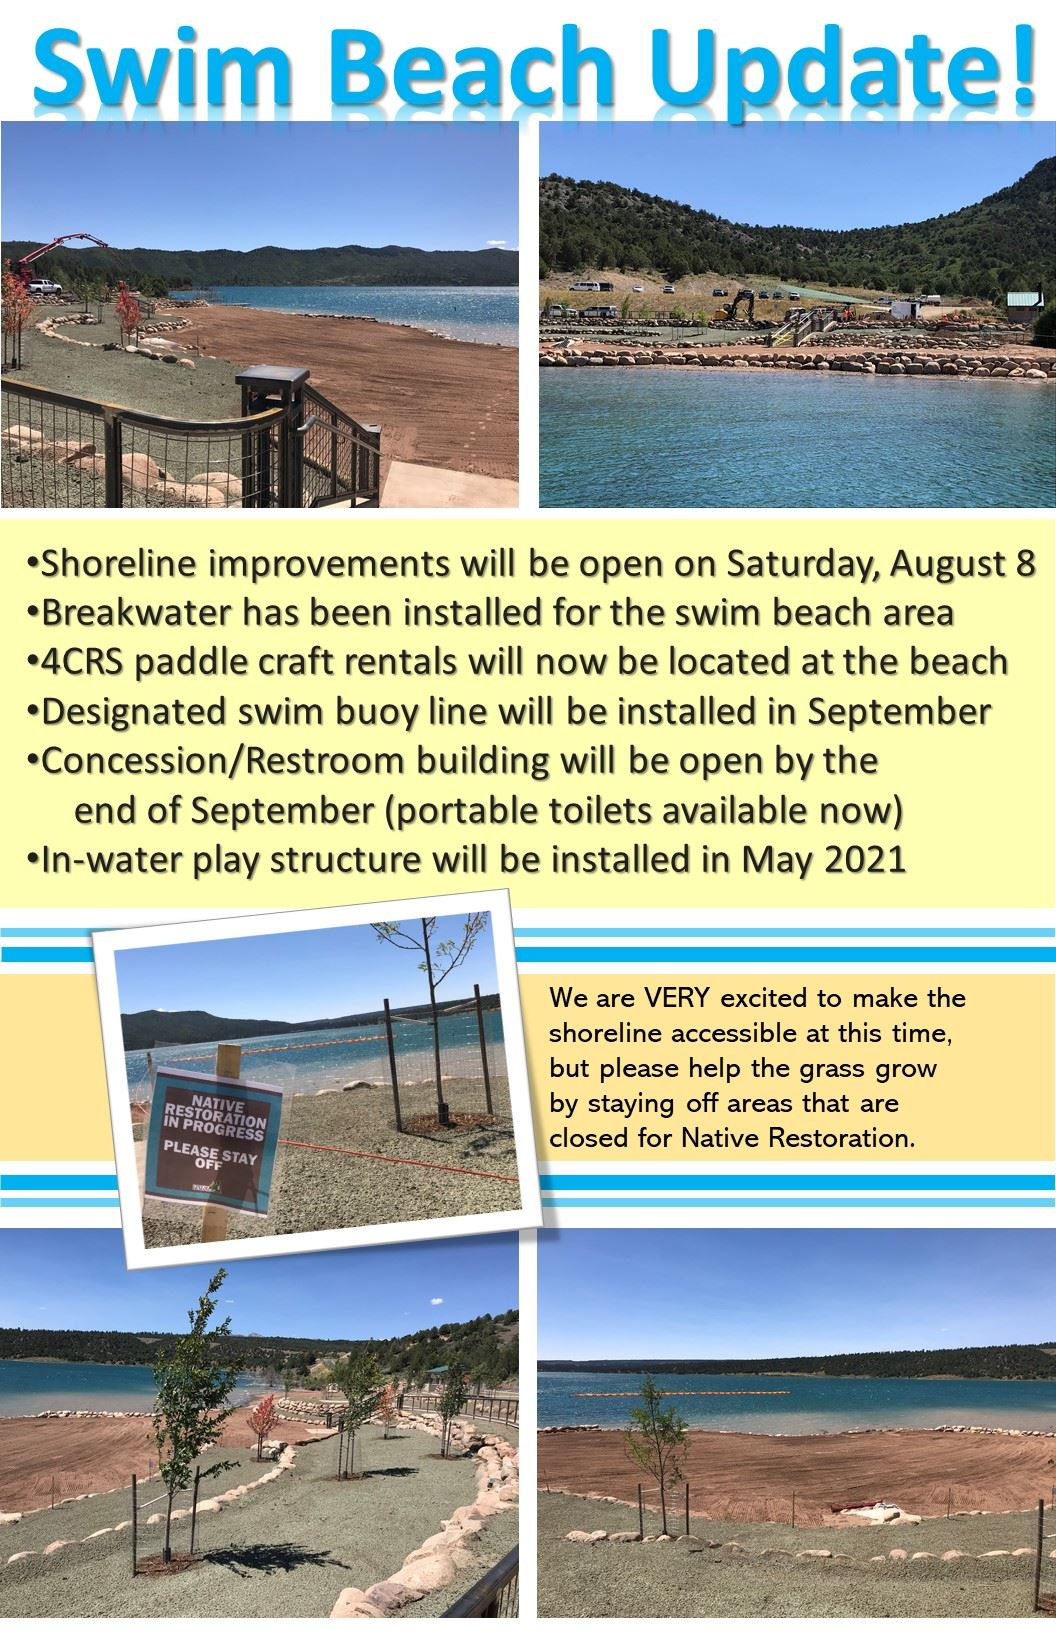 Swim Beach Update 8-6-2020